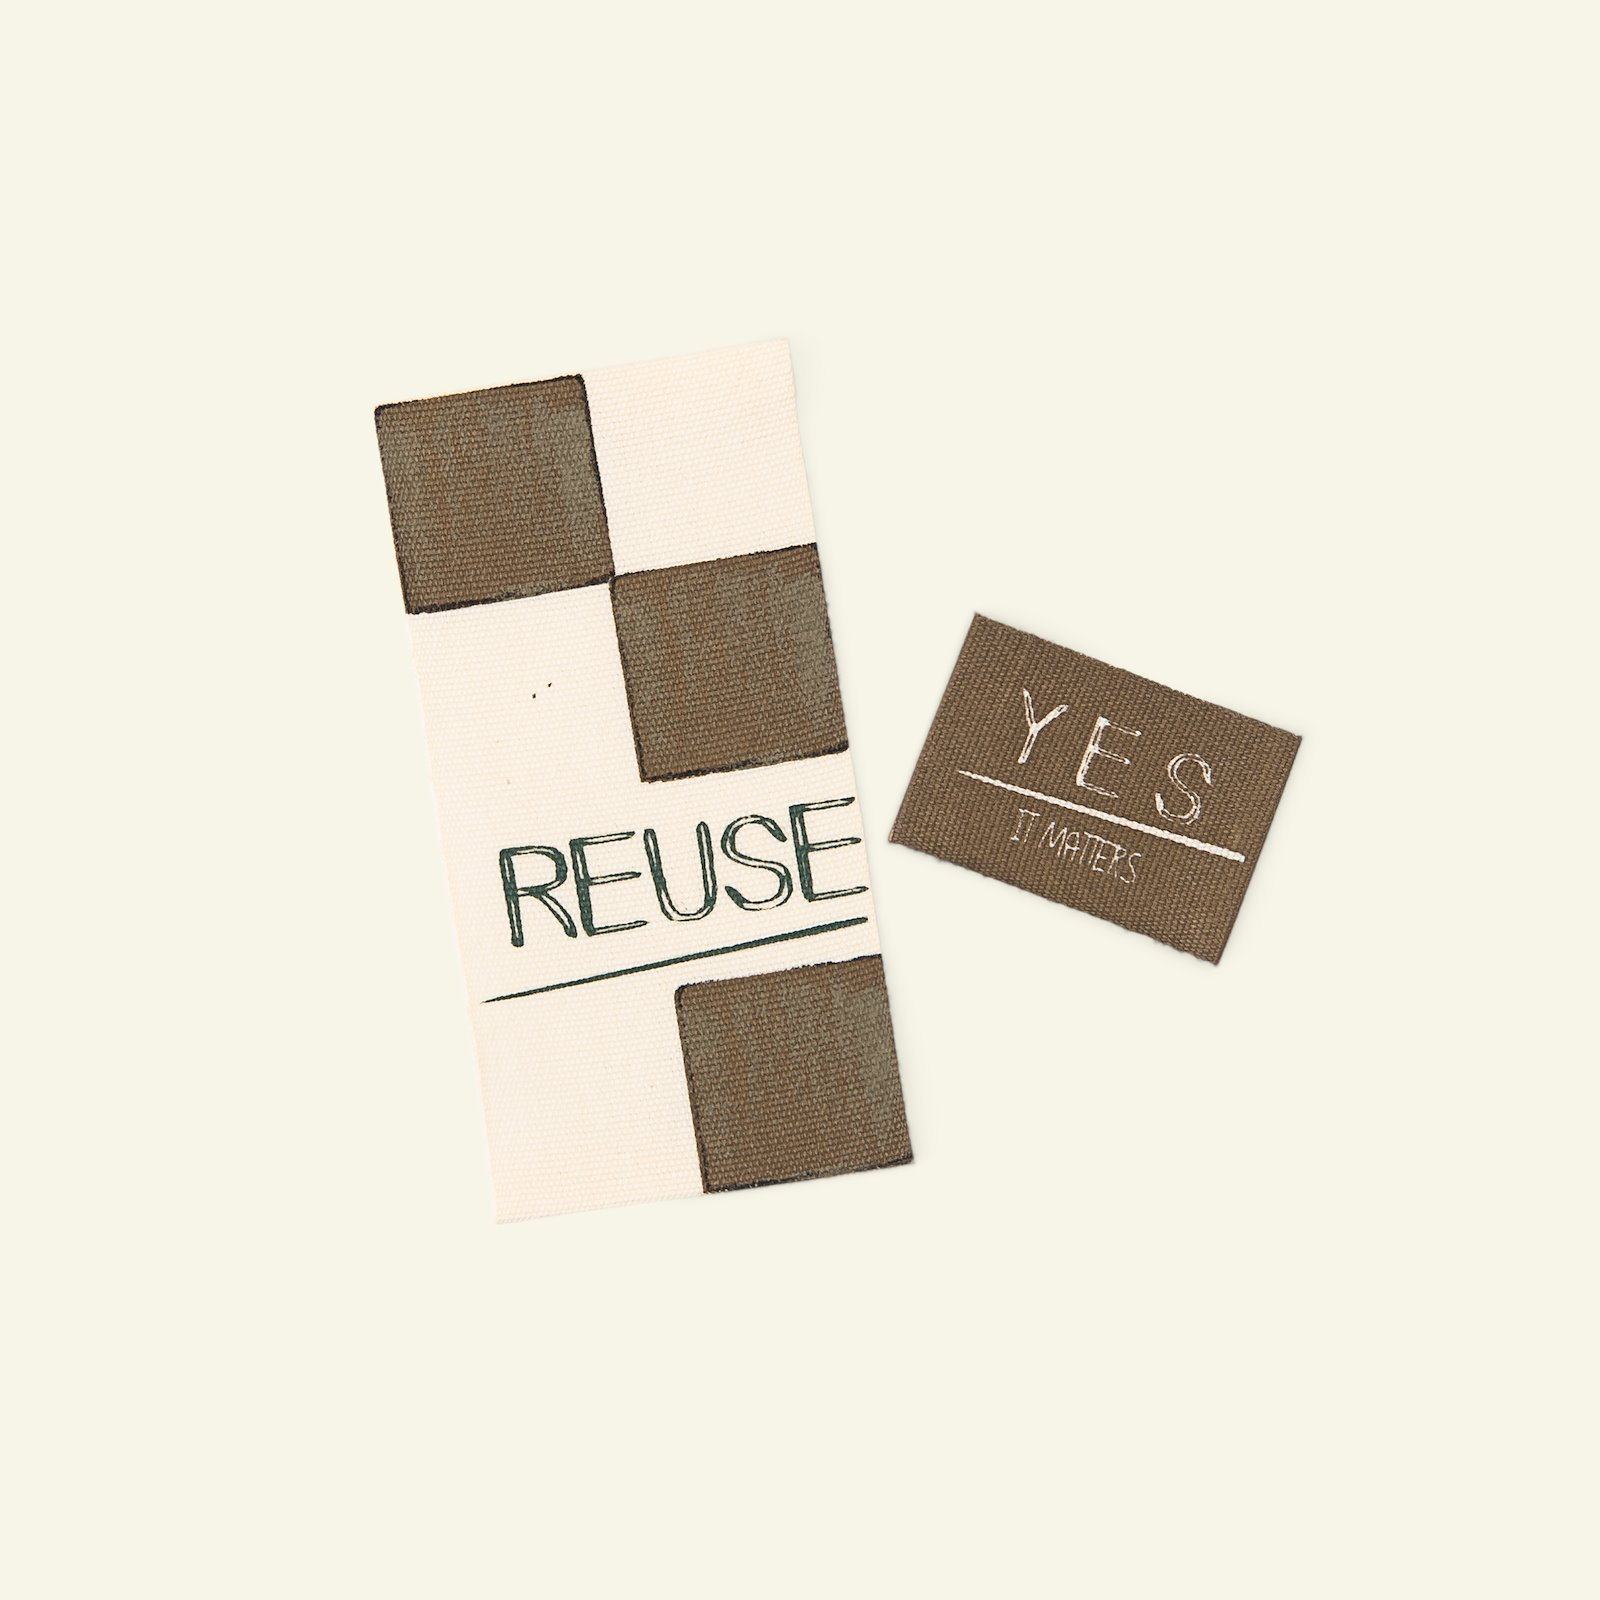 Organic patch kit REUSE/YES brown 2pcs 24847_pack